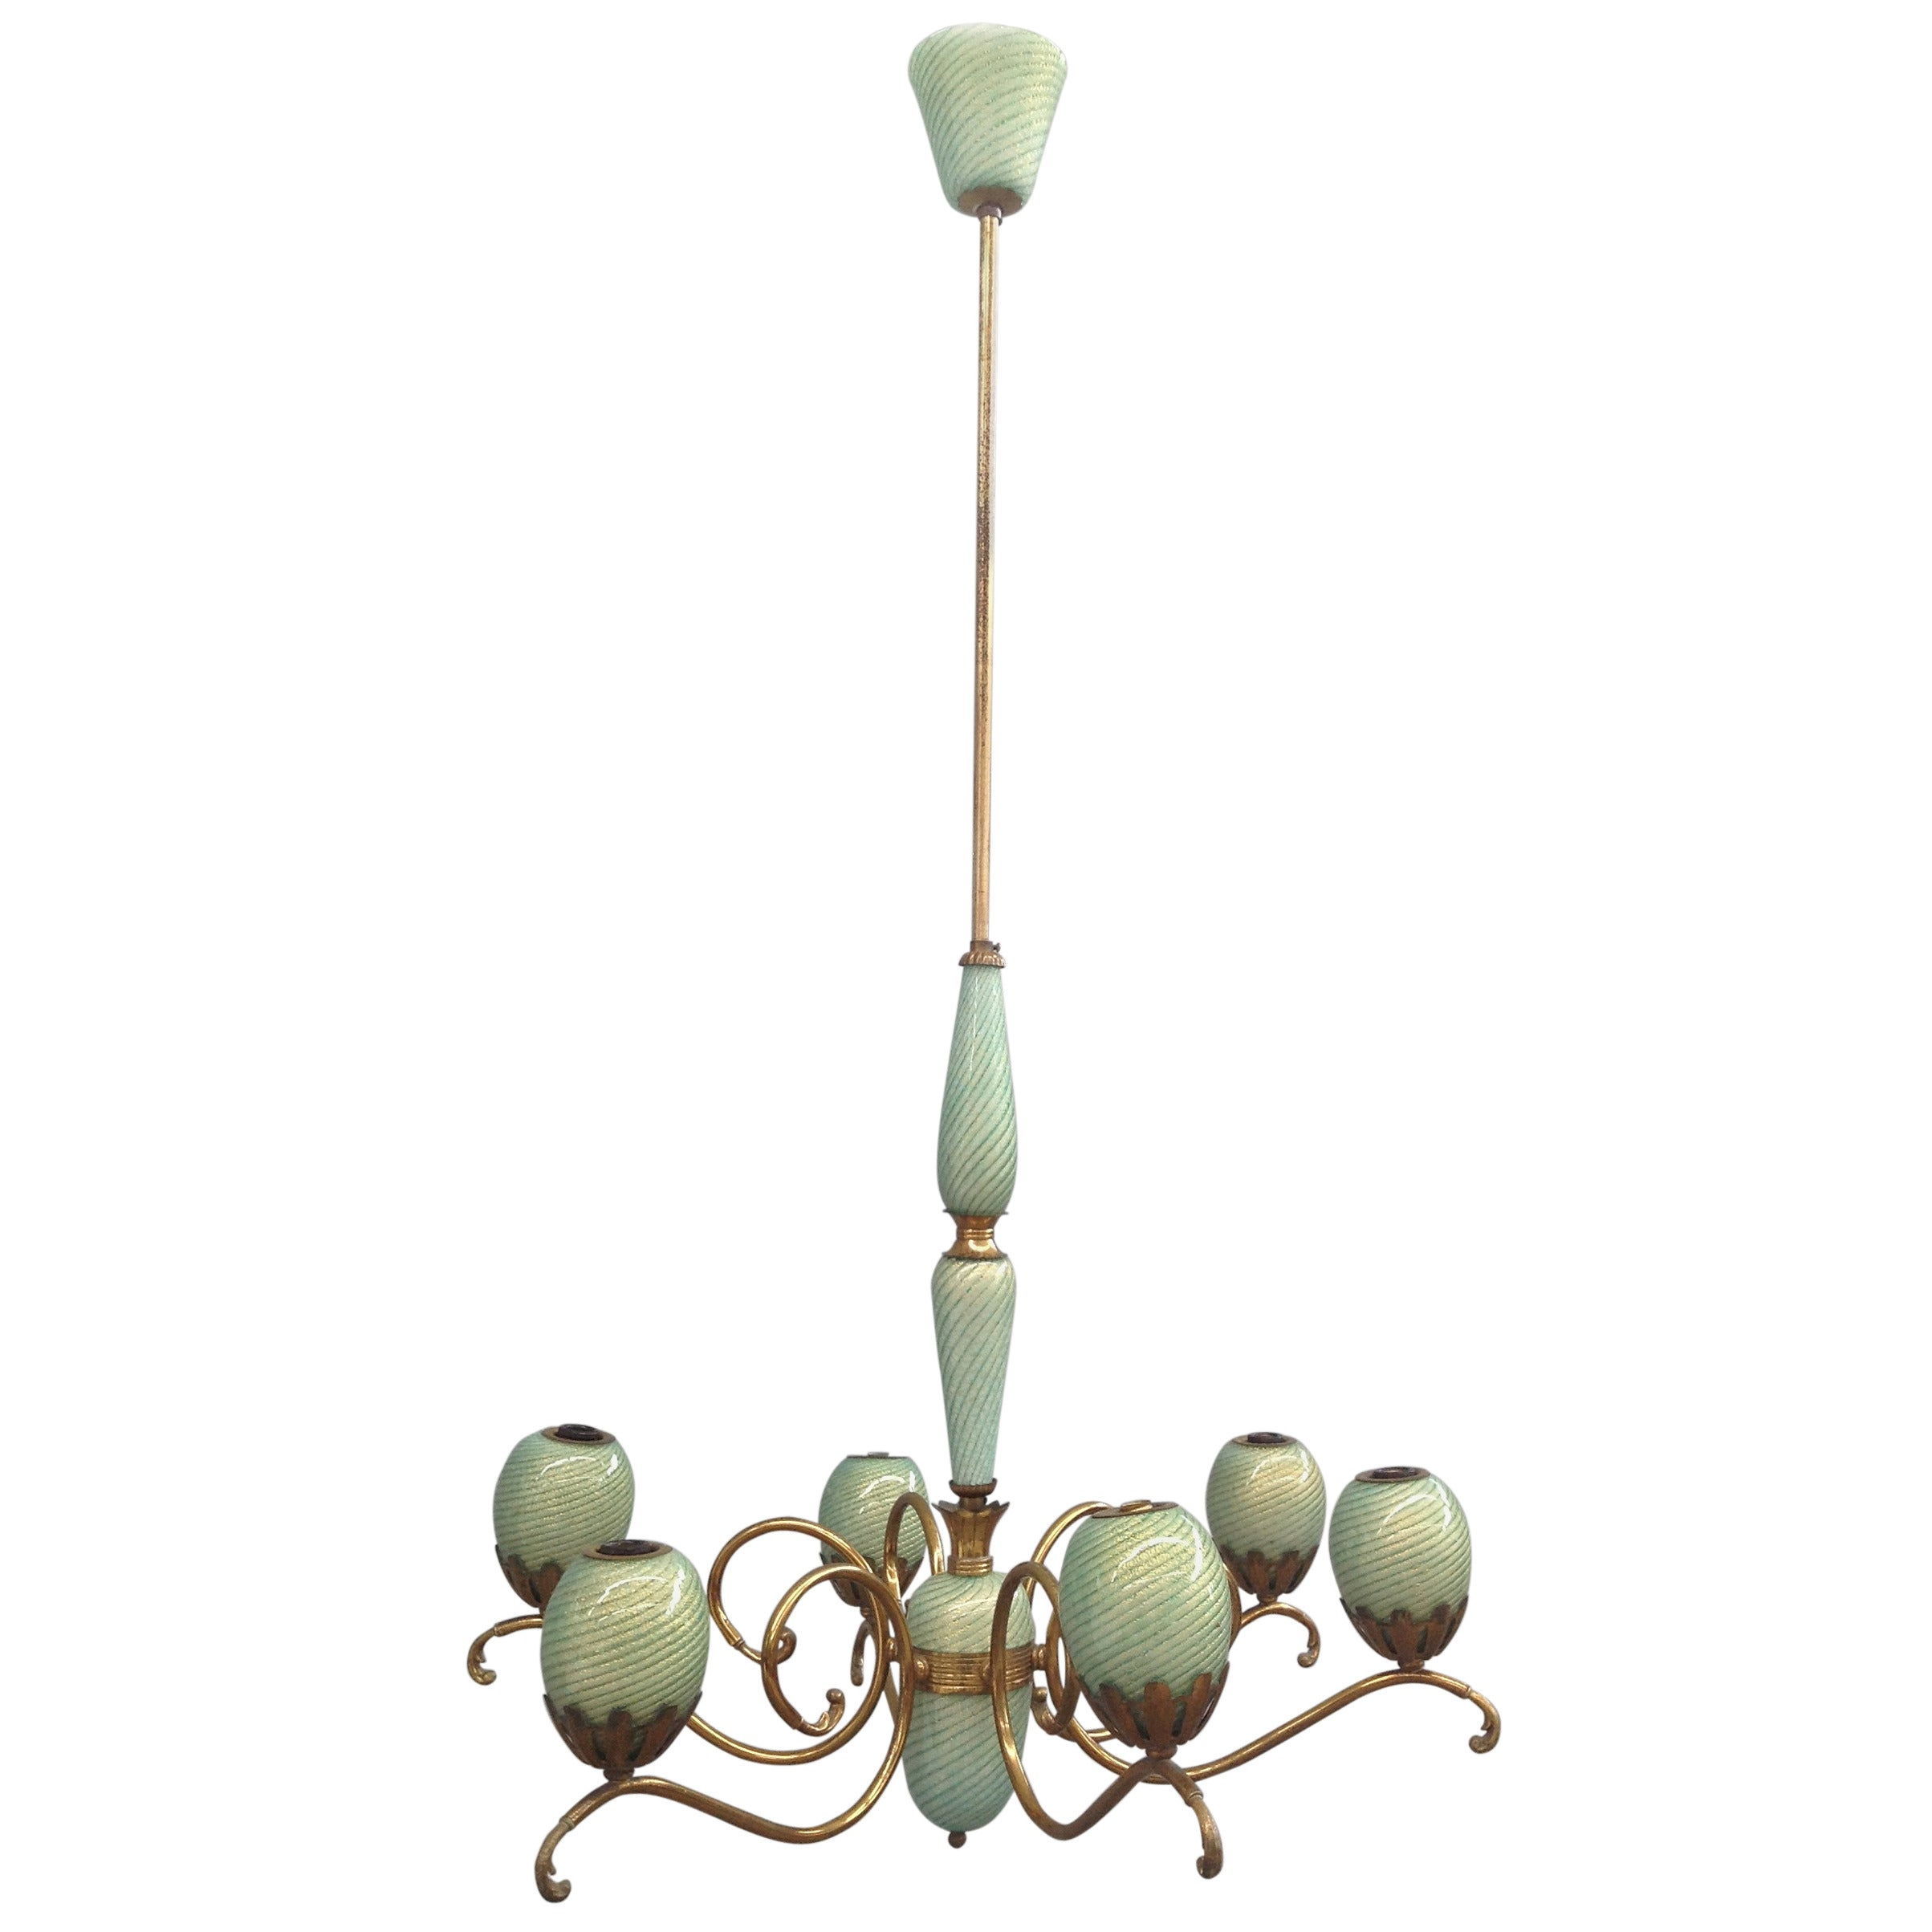 Charming brass and Murano glass chandelier